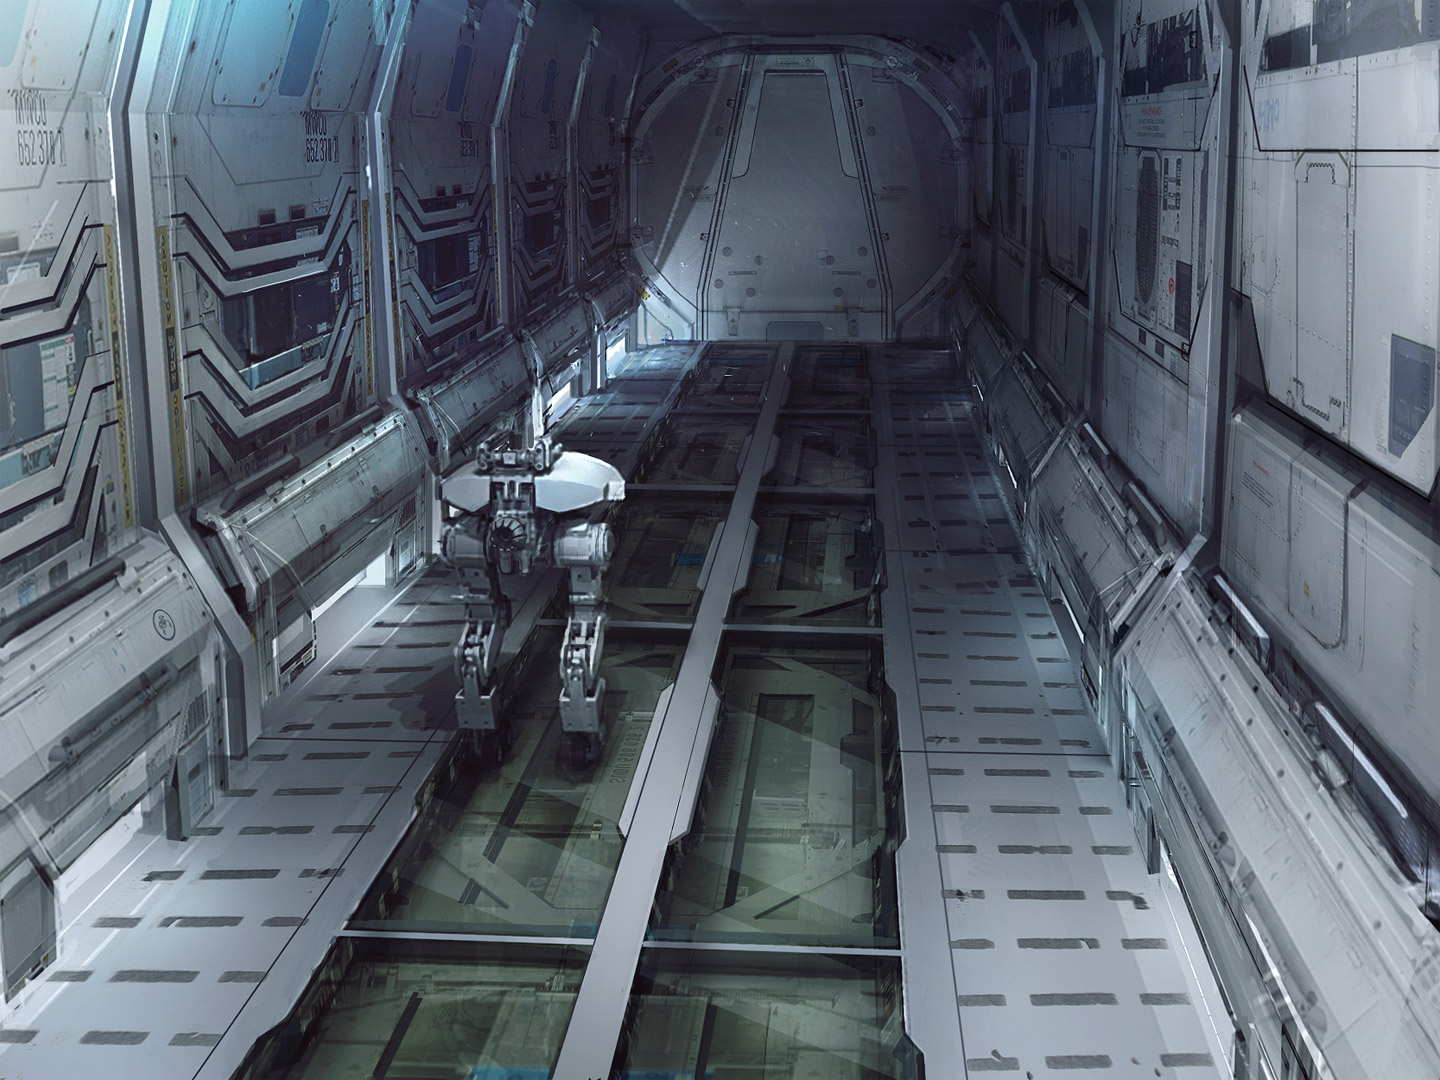 Inside Sci Fi Space Station - Pics about space